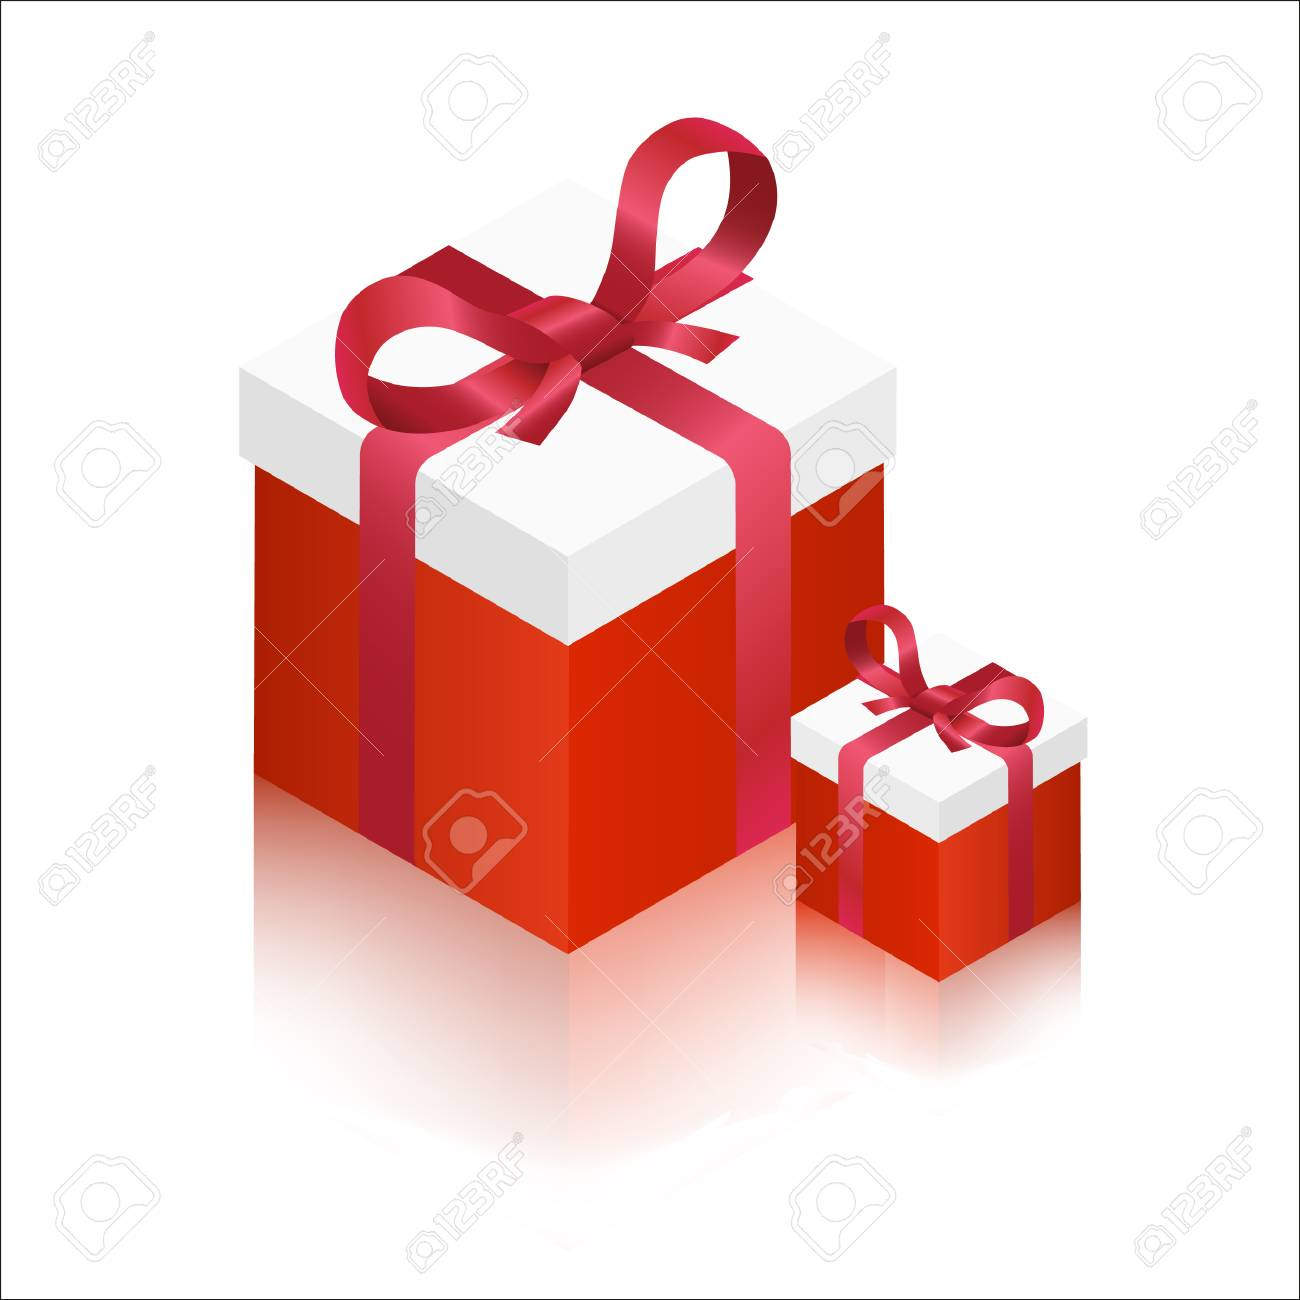 Red Big And Small Gift Boxes Vector Illustration